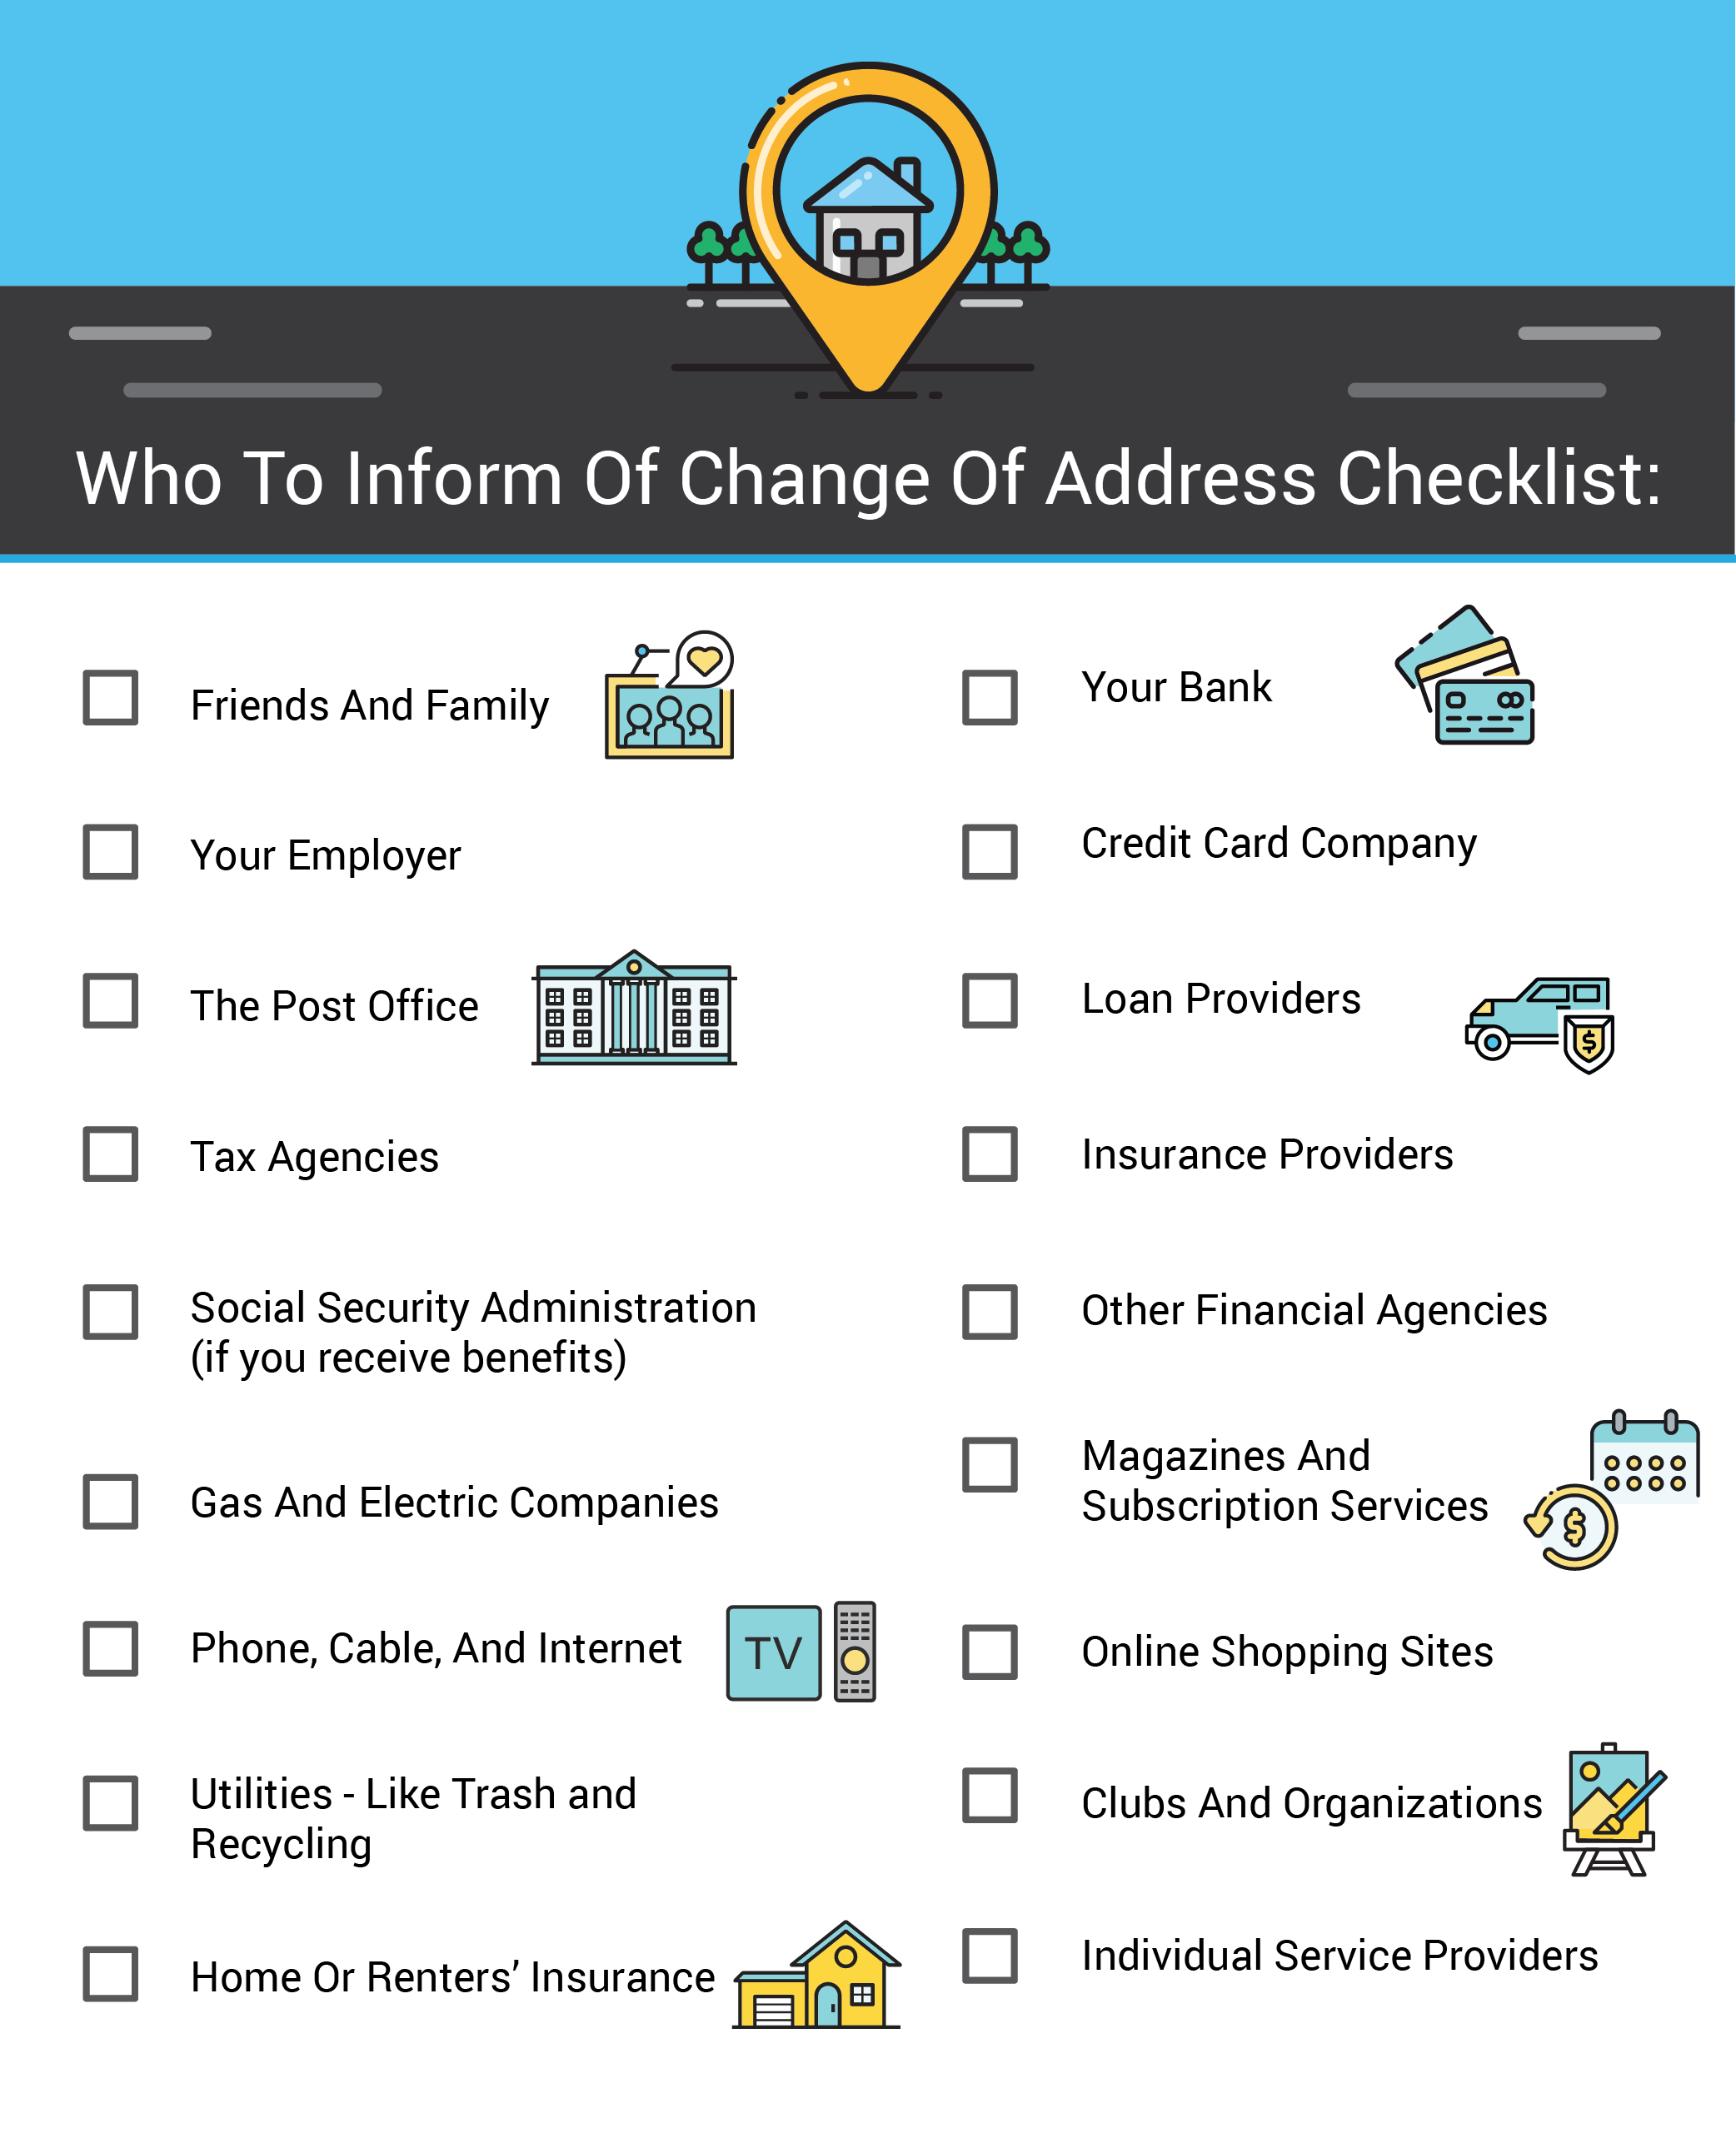 Who to inform of change of address checklist